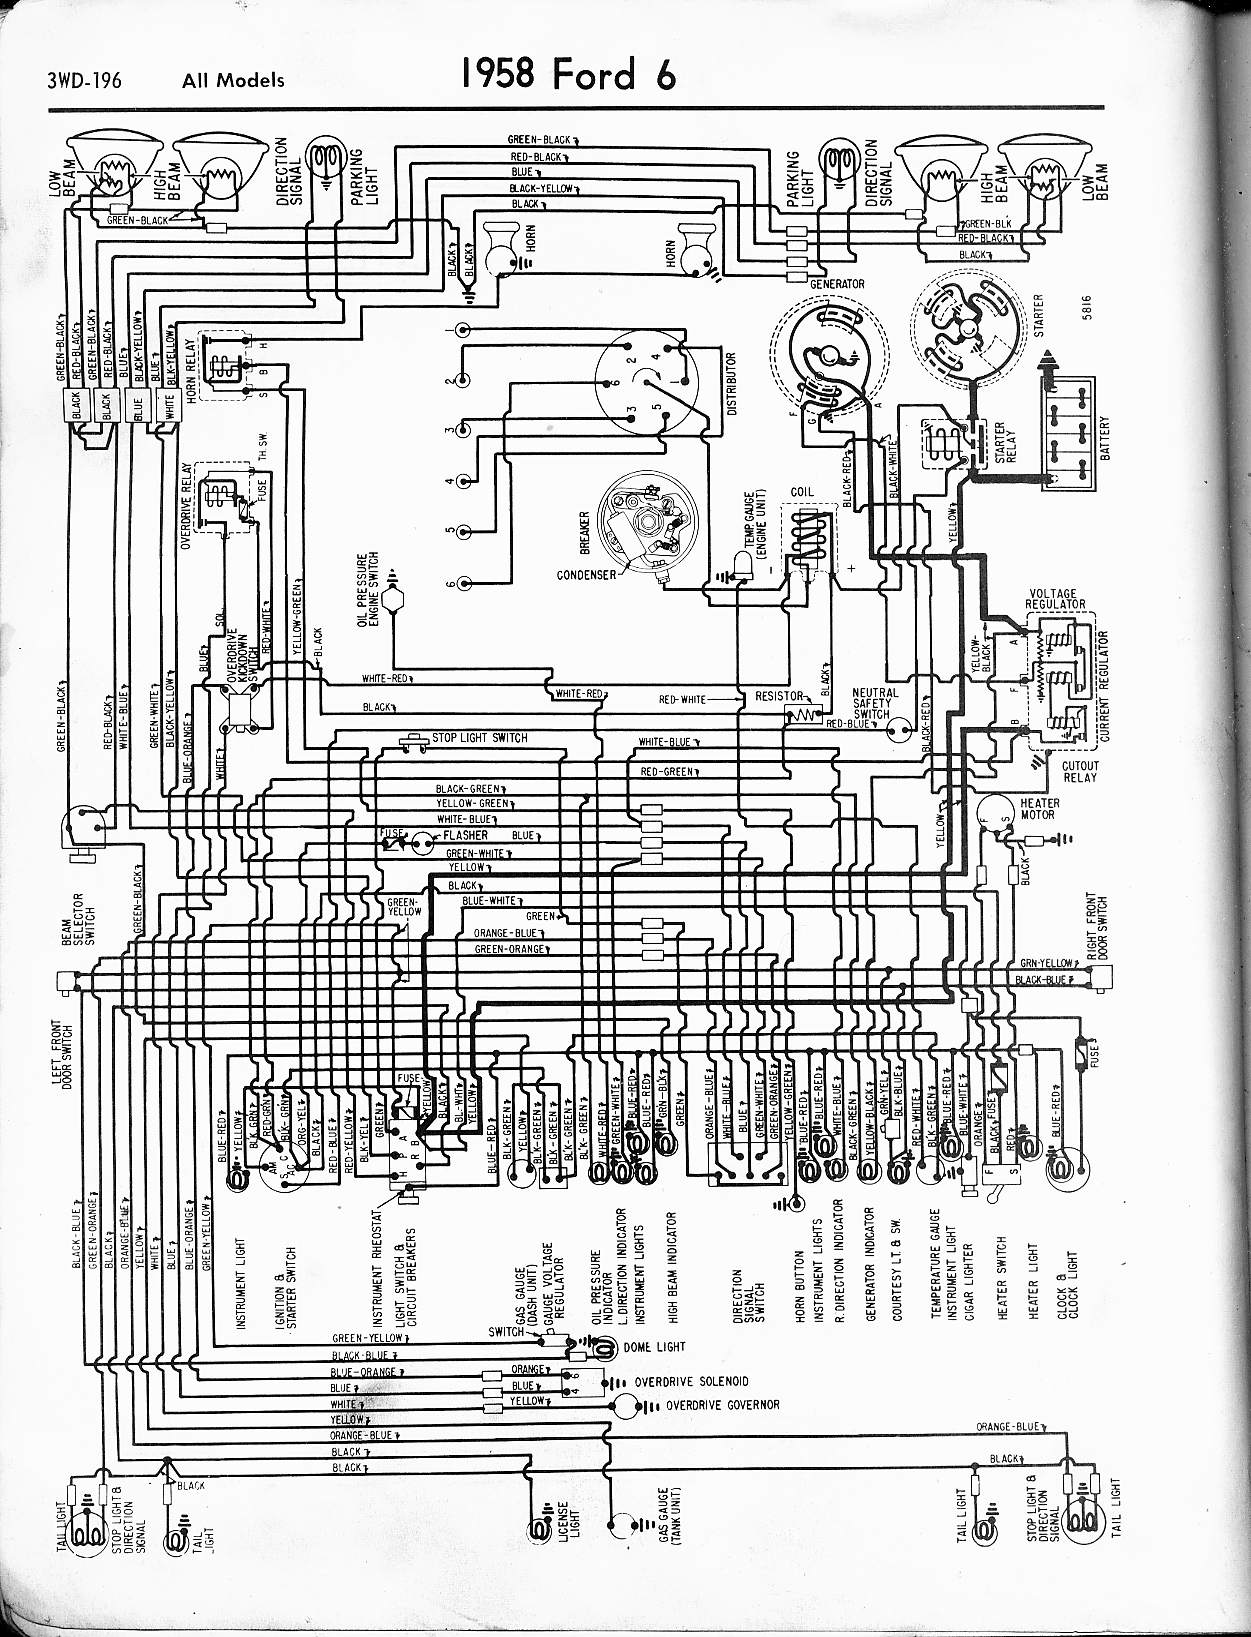 6 Wire Ford Truck Fuse Diagram Simple Wirings 2003 F 250 57 65 Wiring Diagrams And Relay 1958 Cyl All